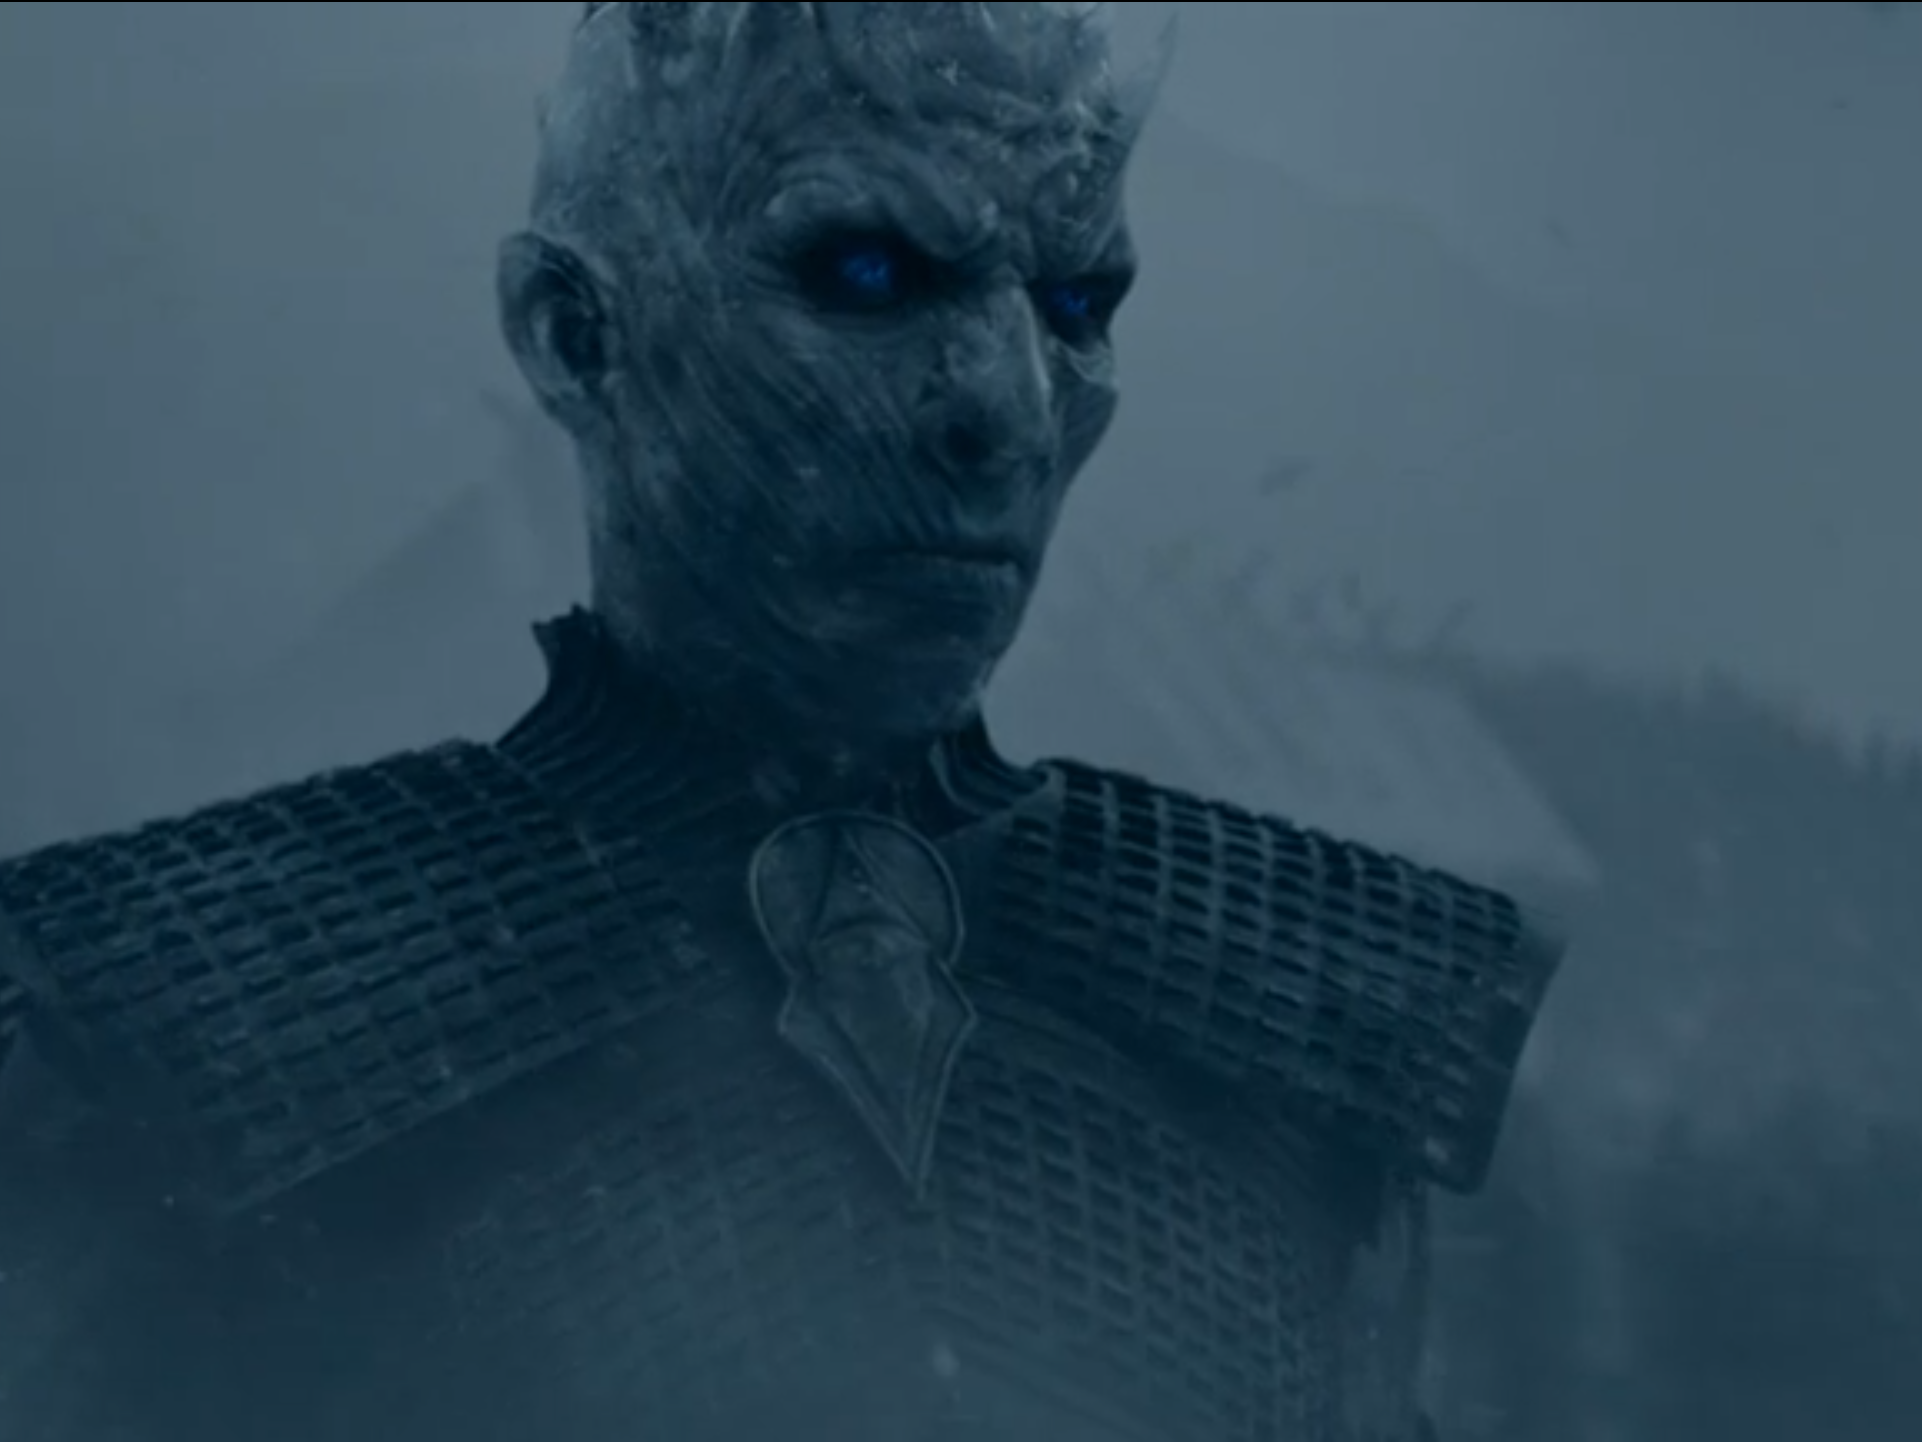 White Walkers or Stone Men: Which 'Game of Thrones' Zombie Creature is Worse?